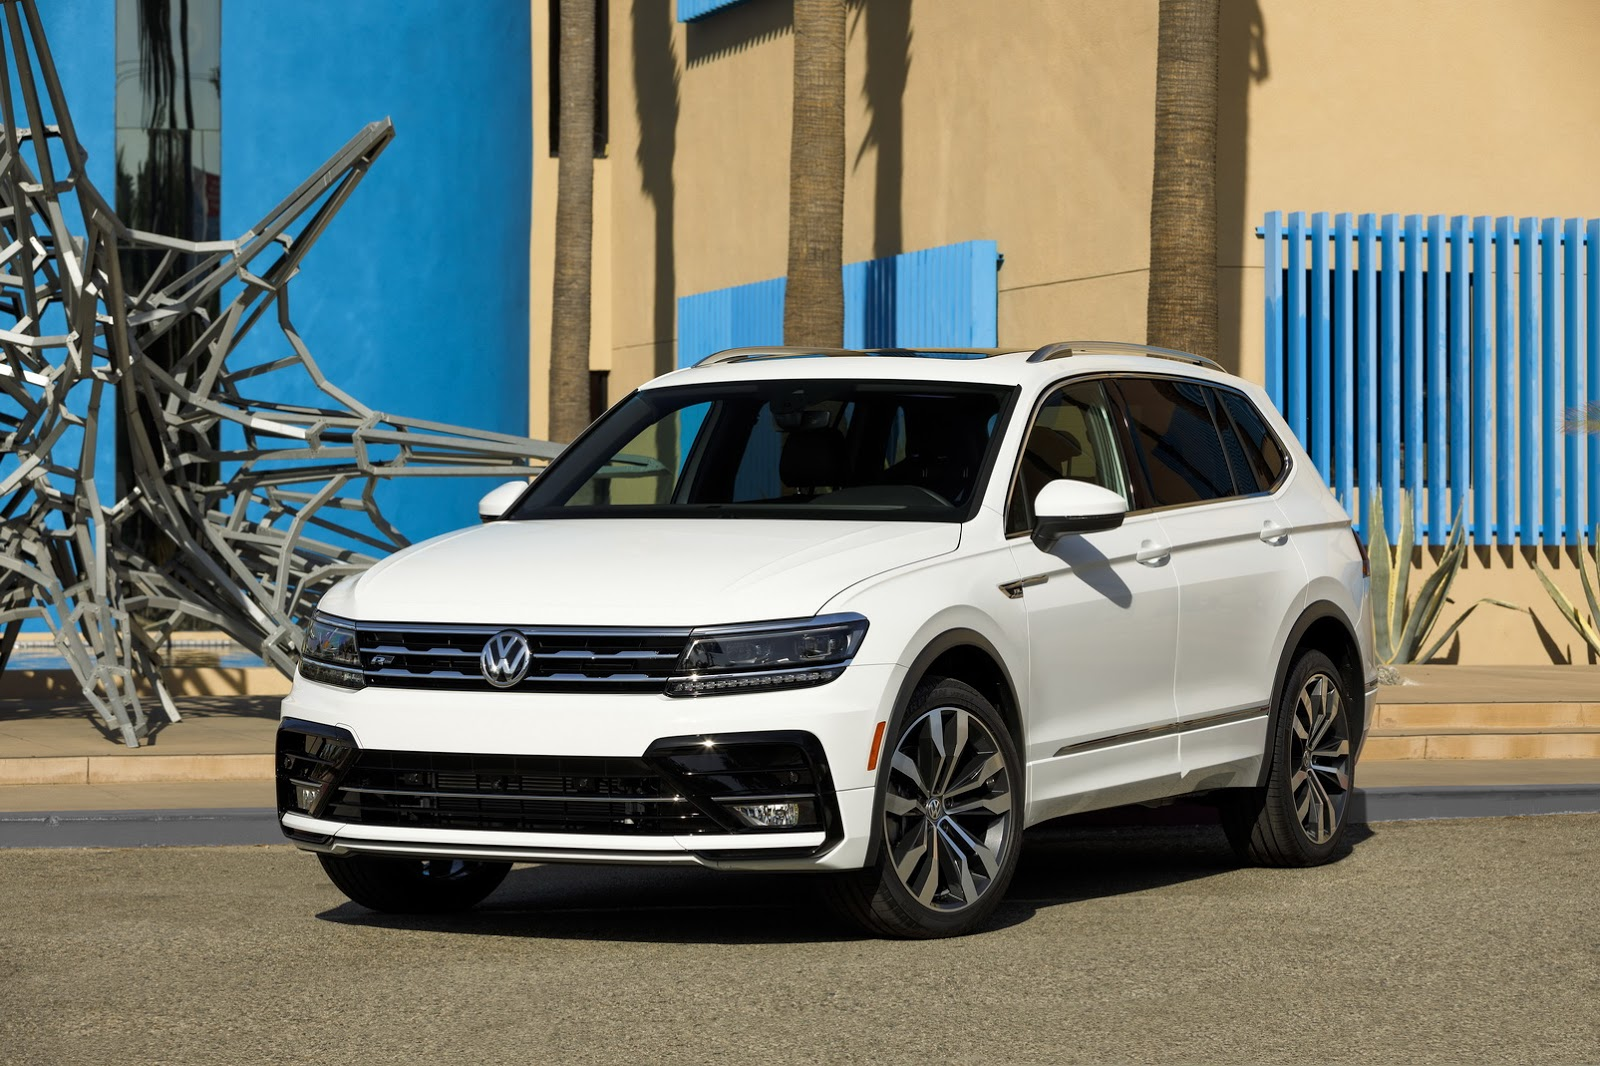 2018 volkswagen tiguan gets r line body kit in america. Black Bedroom Furniture Sets. Home Design Ideas